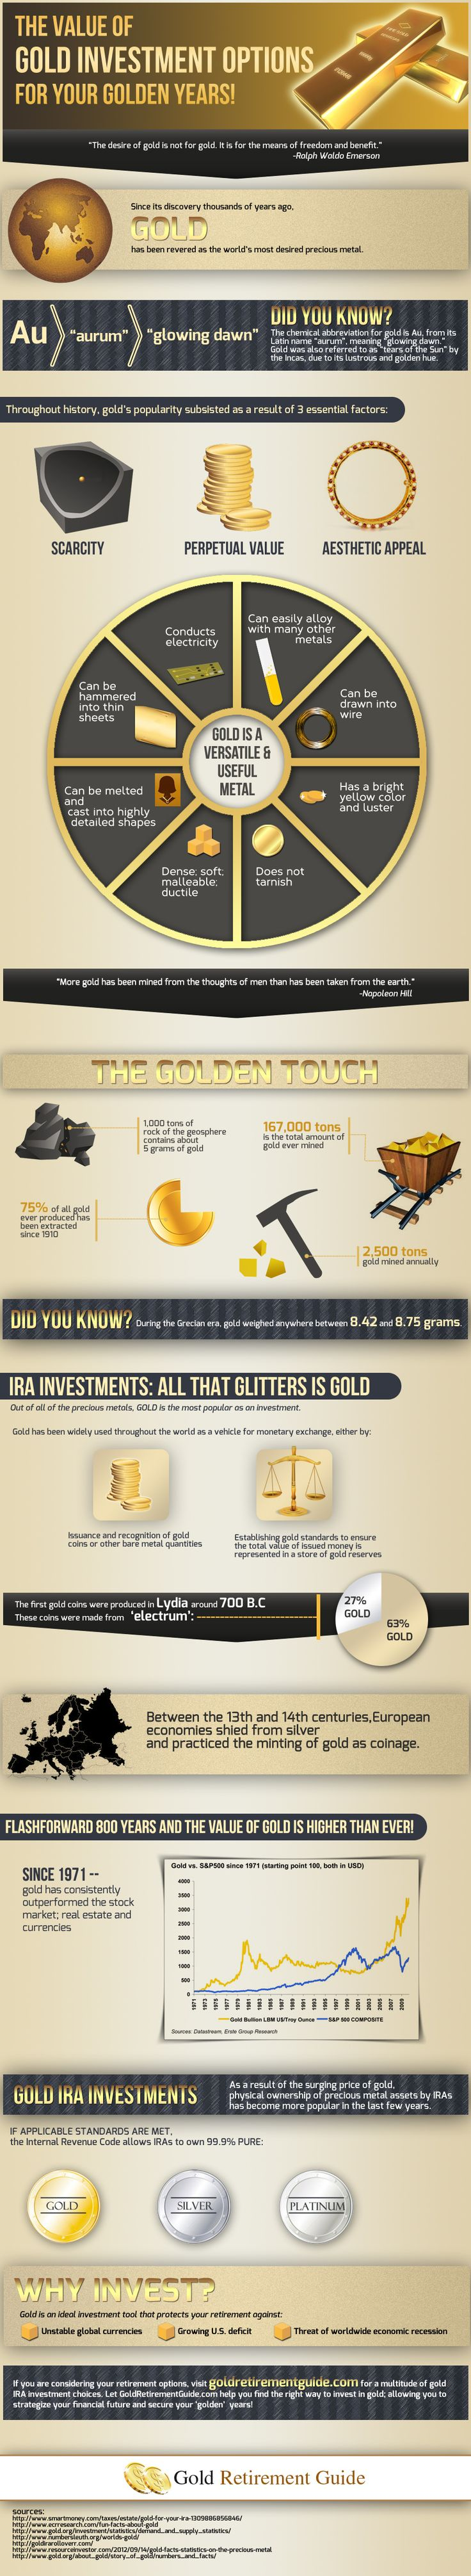 http://goldretirementguide.com/the-value-of-gold-investment-options-for-your-golden-years/  The Value of Gold Investment Options for Your Golden Years